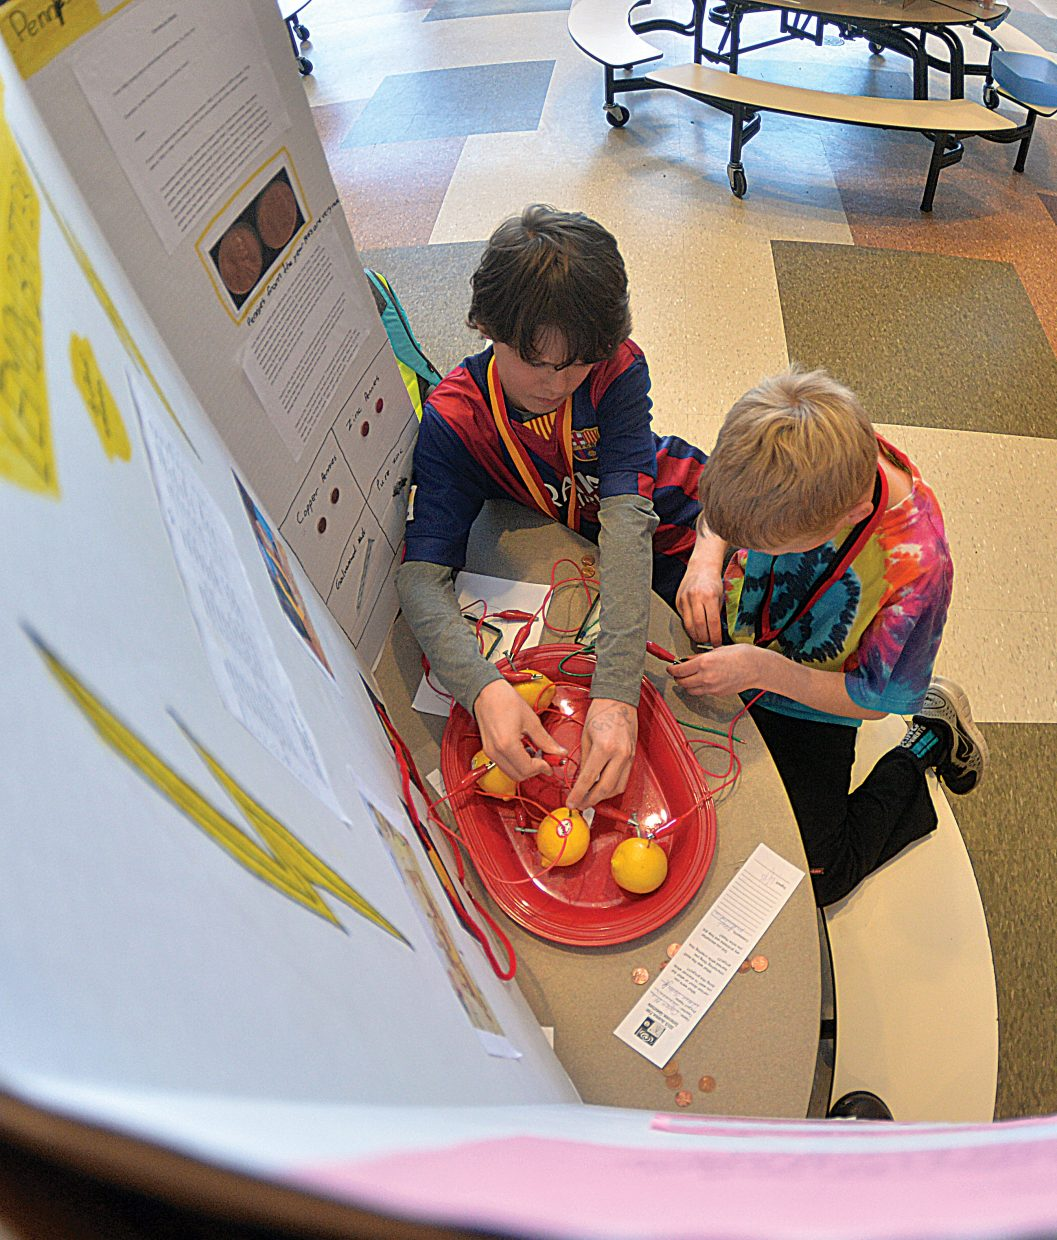 Fourth-graders Cade Gedeon, left, and Olin Webster demonstrate their project, the Lemon Battery, at the Soda Creek Elementary School's Science Fair on Thursday afternoon.